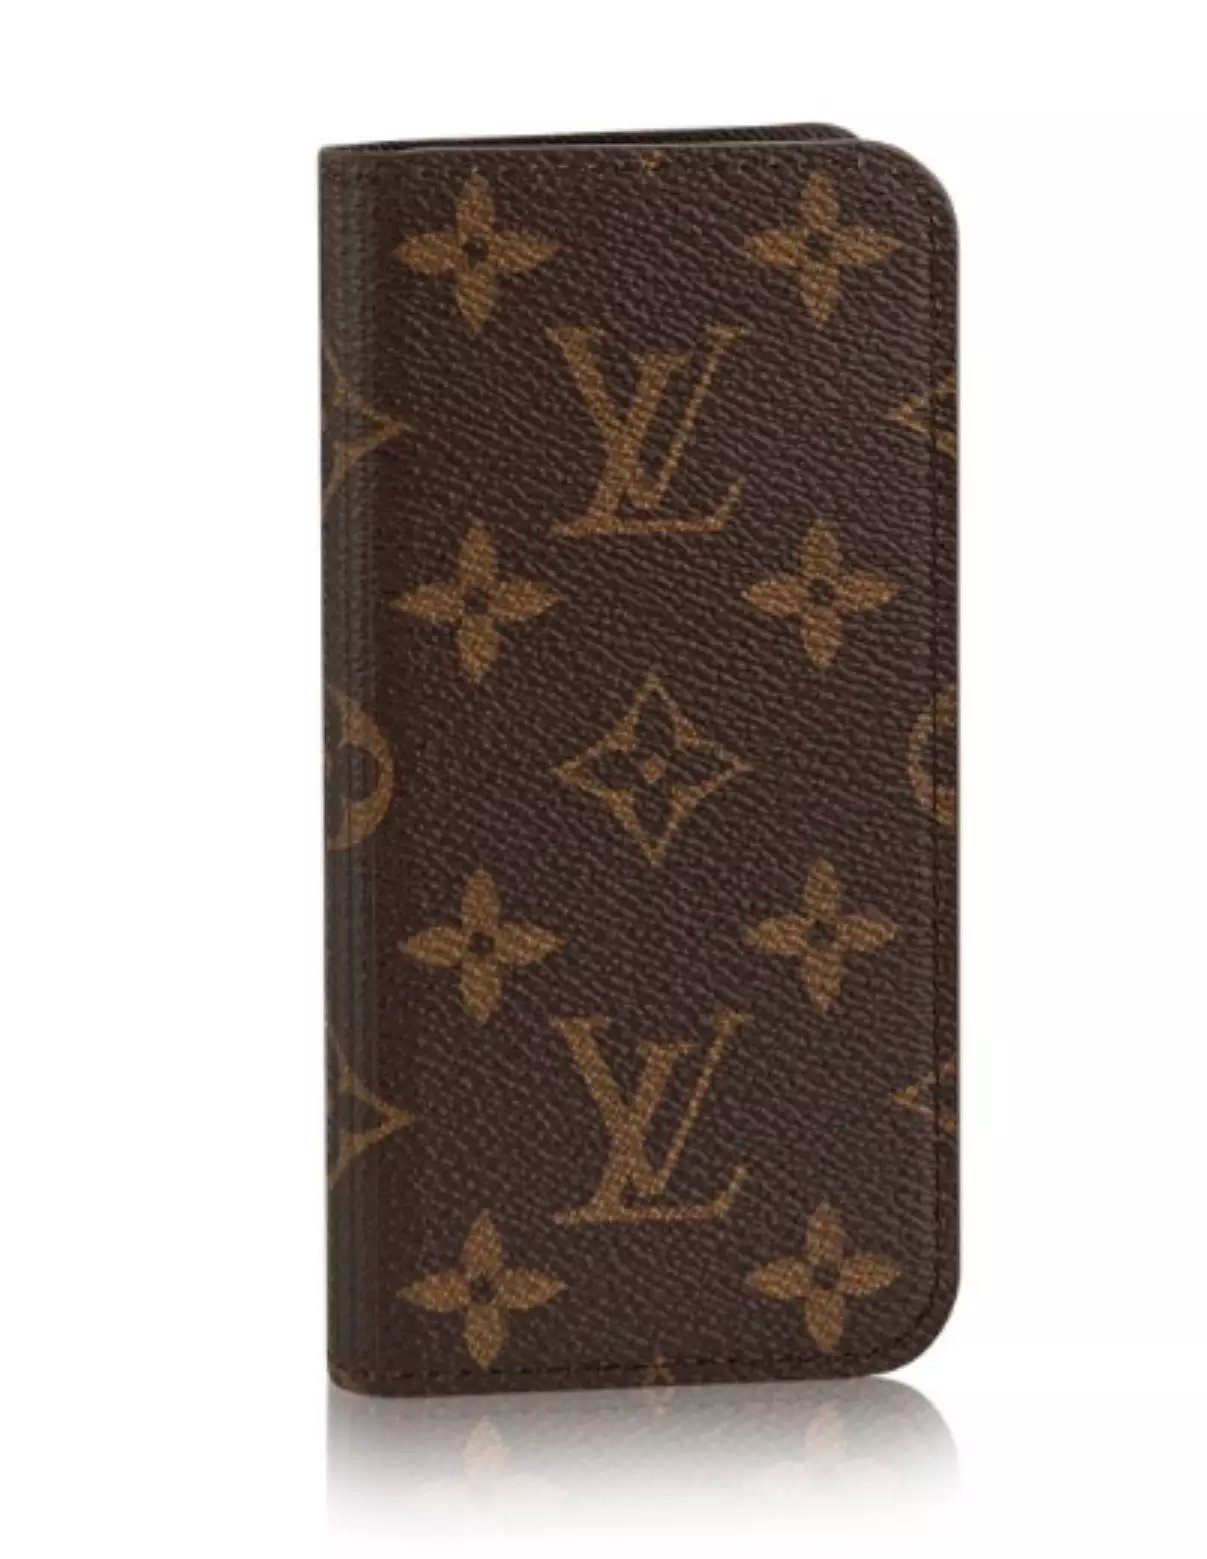 foto iphone hülle iphone klapphülle Louis Vuitton iphone7 hülle gummi hülle coole handyhülle handyhüllen machen las7n vergleich iphone 7 und 7 iphone 7 ilikon ca7 iphone 6 vorschau